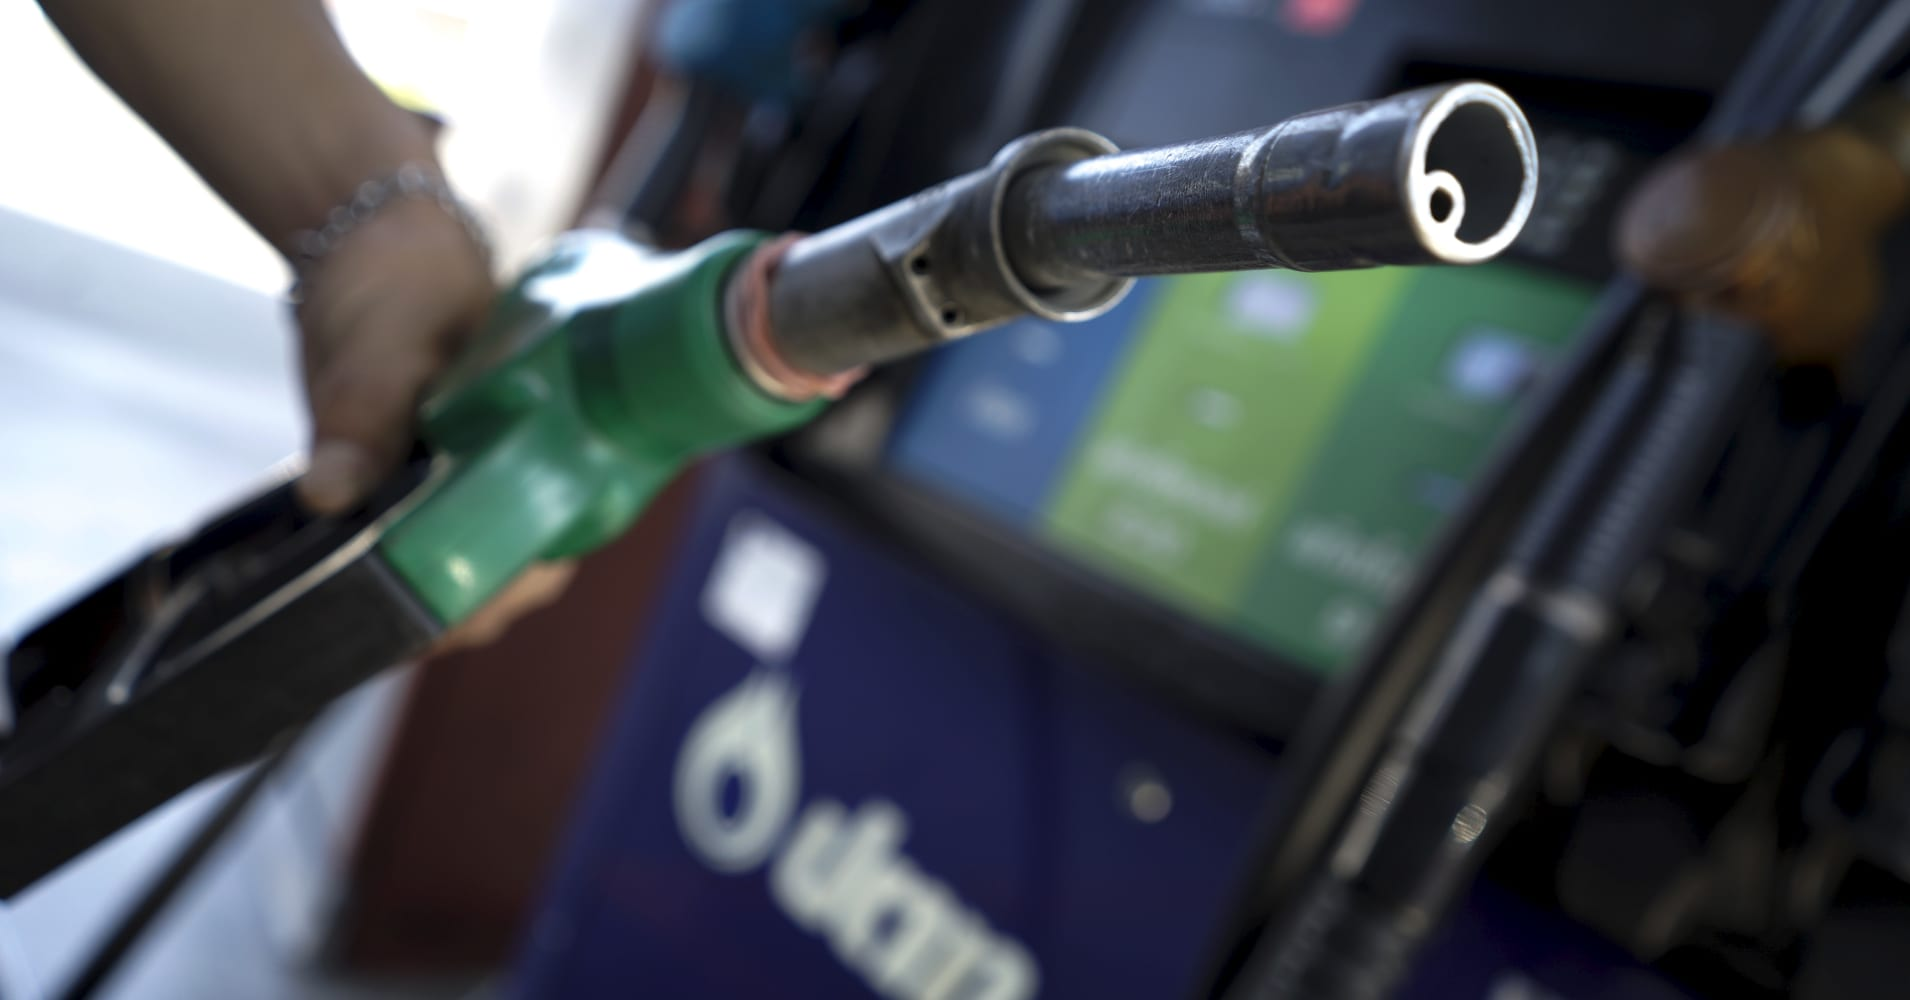 Oil pinned near 5-month low as global oversupply weighs